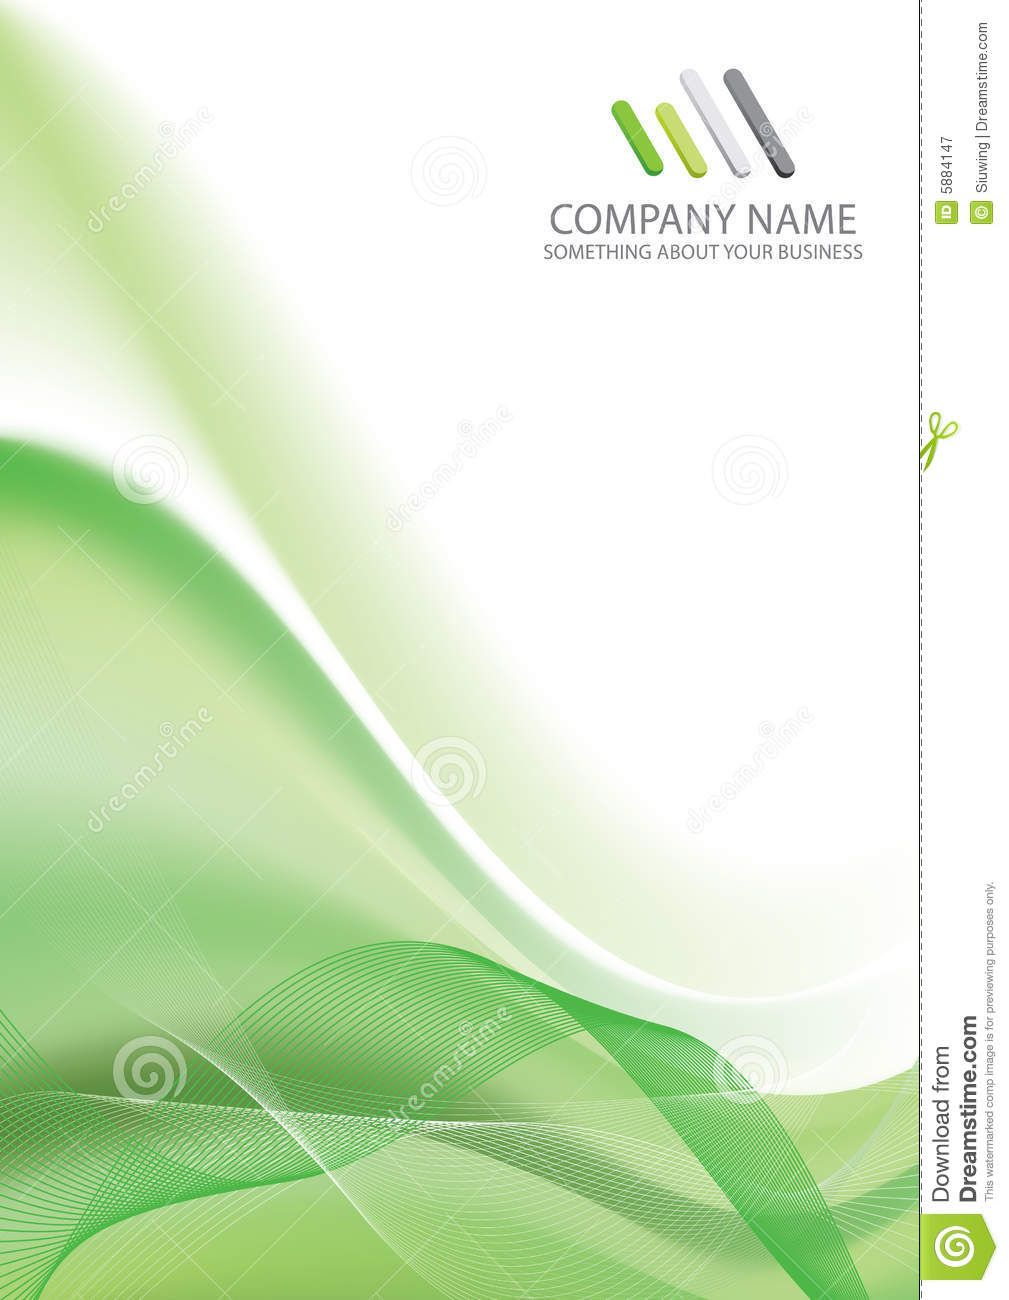 presentation cover sheet template